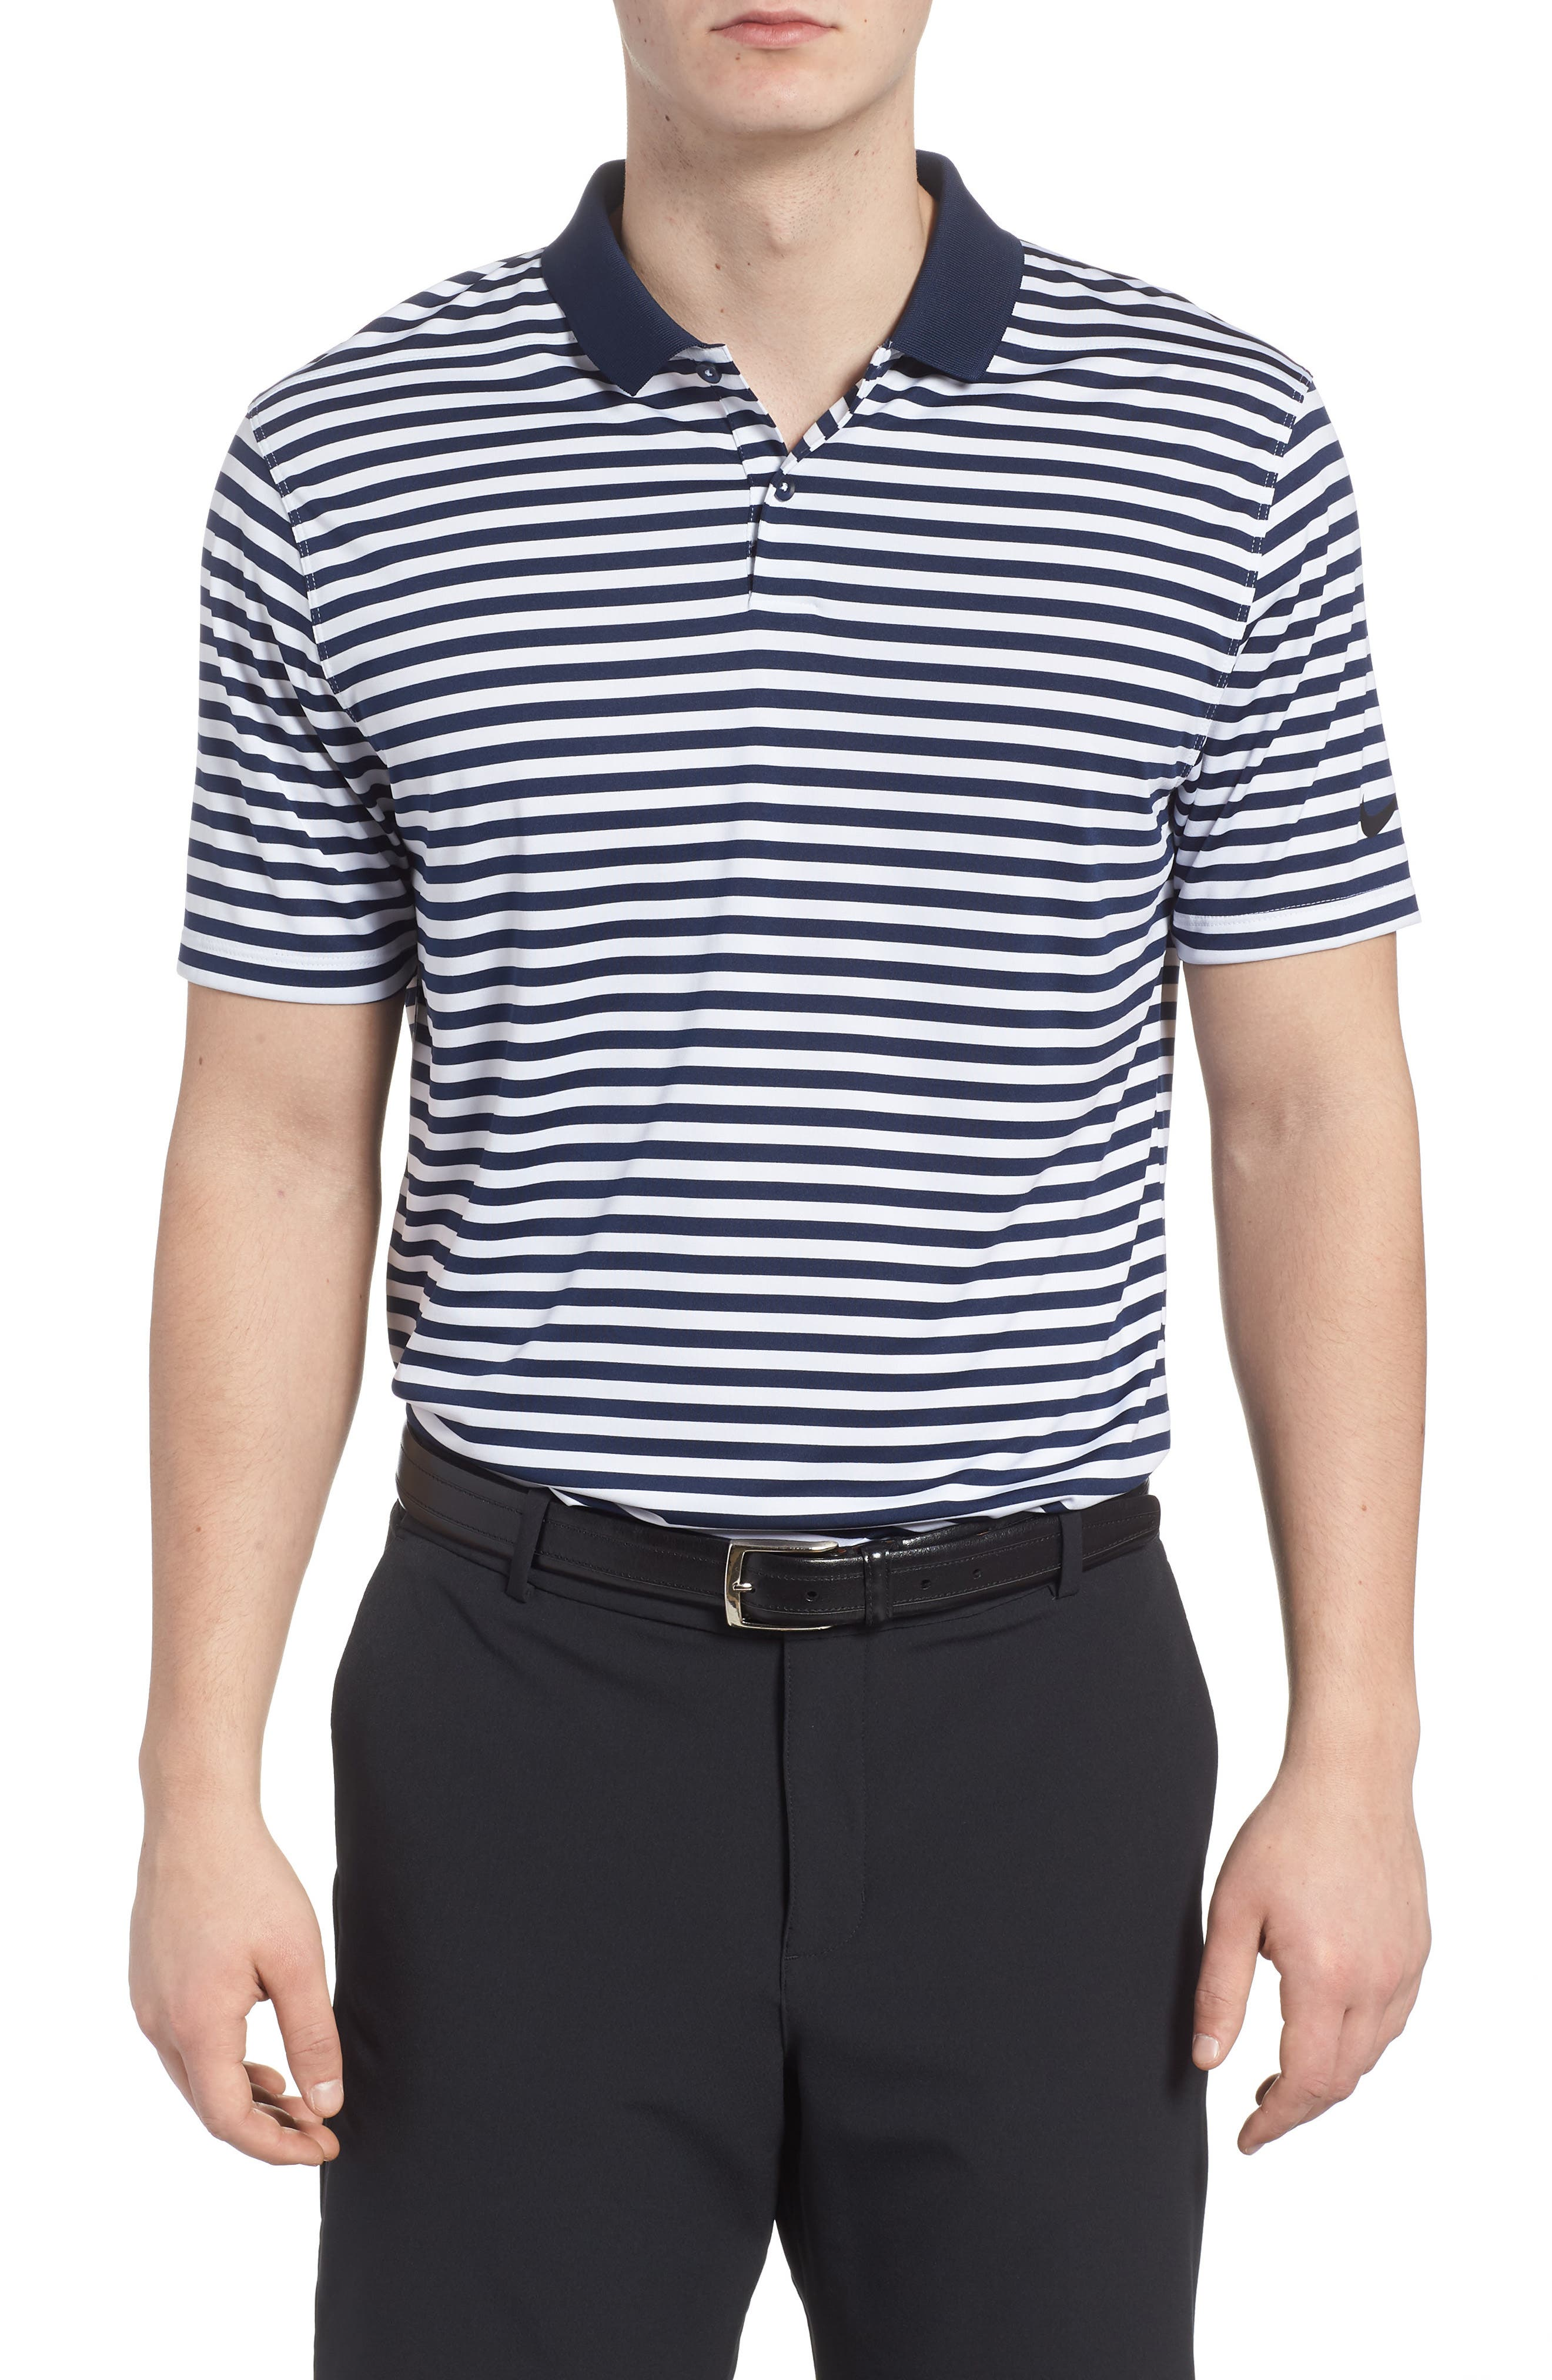 Dry Victory Stripe Golf Polo,                             Main thumbnail 1, color,                             College Navy/ White/ Black